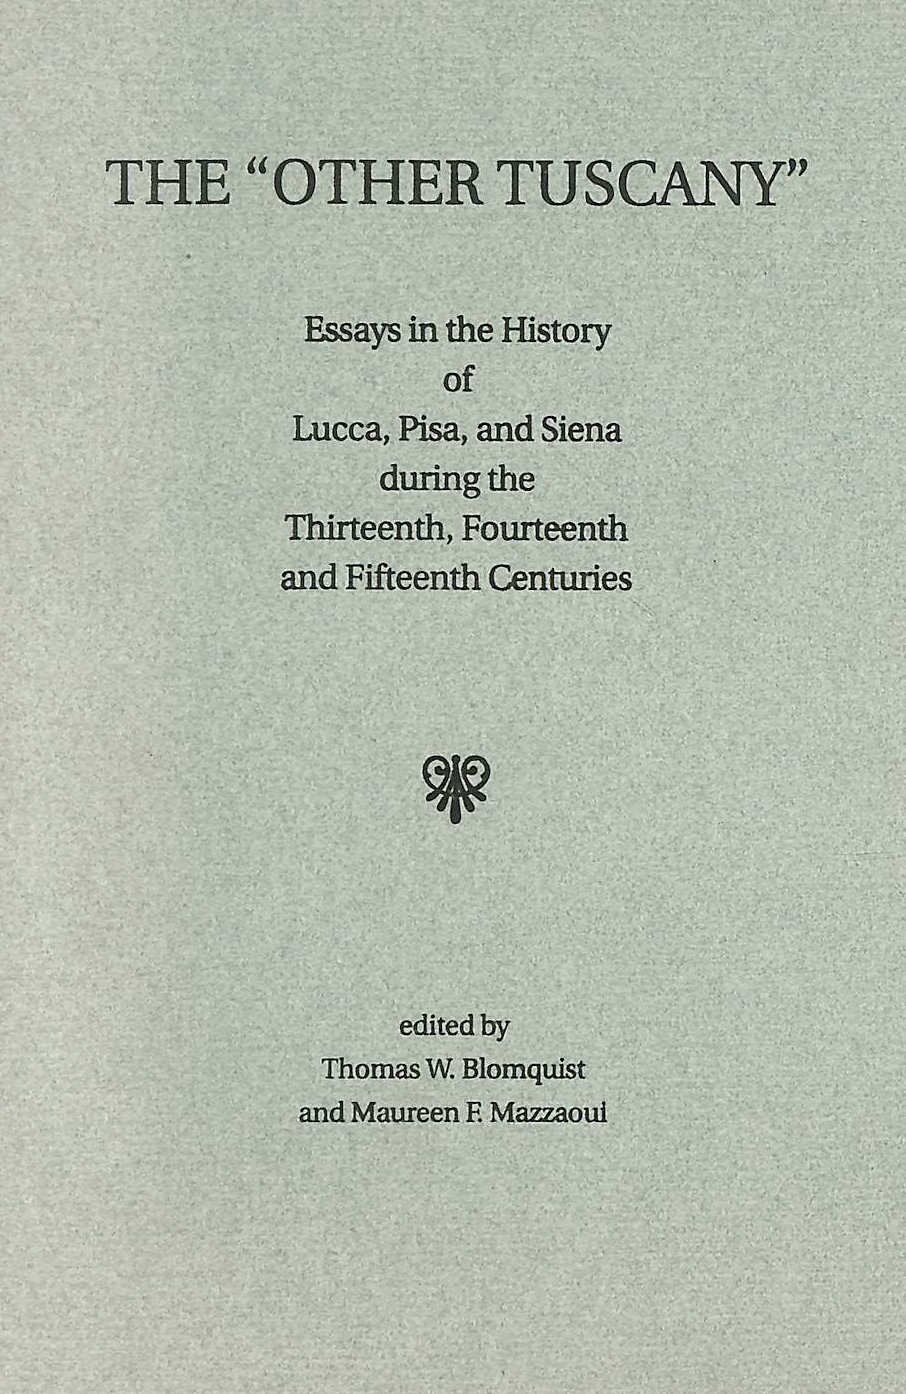 Image for The Other Tuscany: Essays in the History of Lucca, Pisa, and Siena During the Thirteenth, Fourteenth, and Fifteenth Centuries